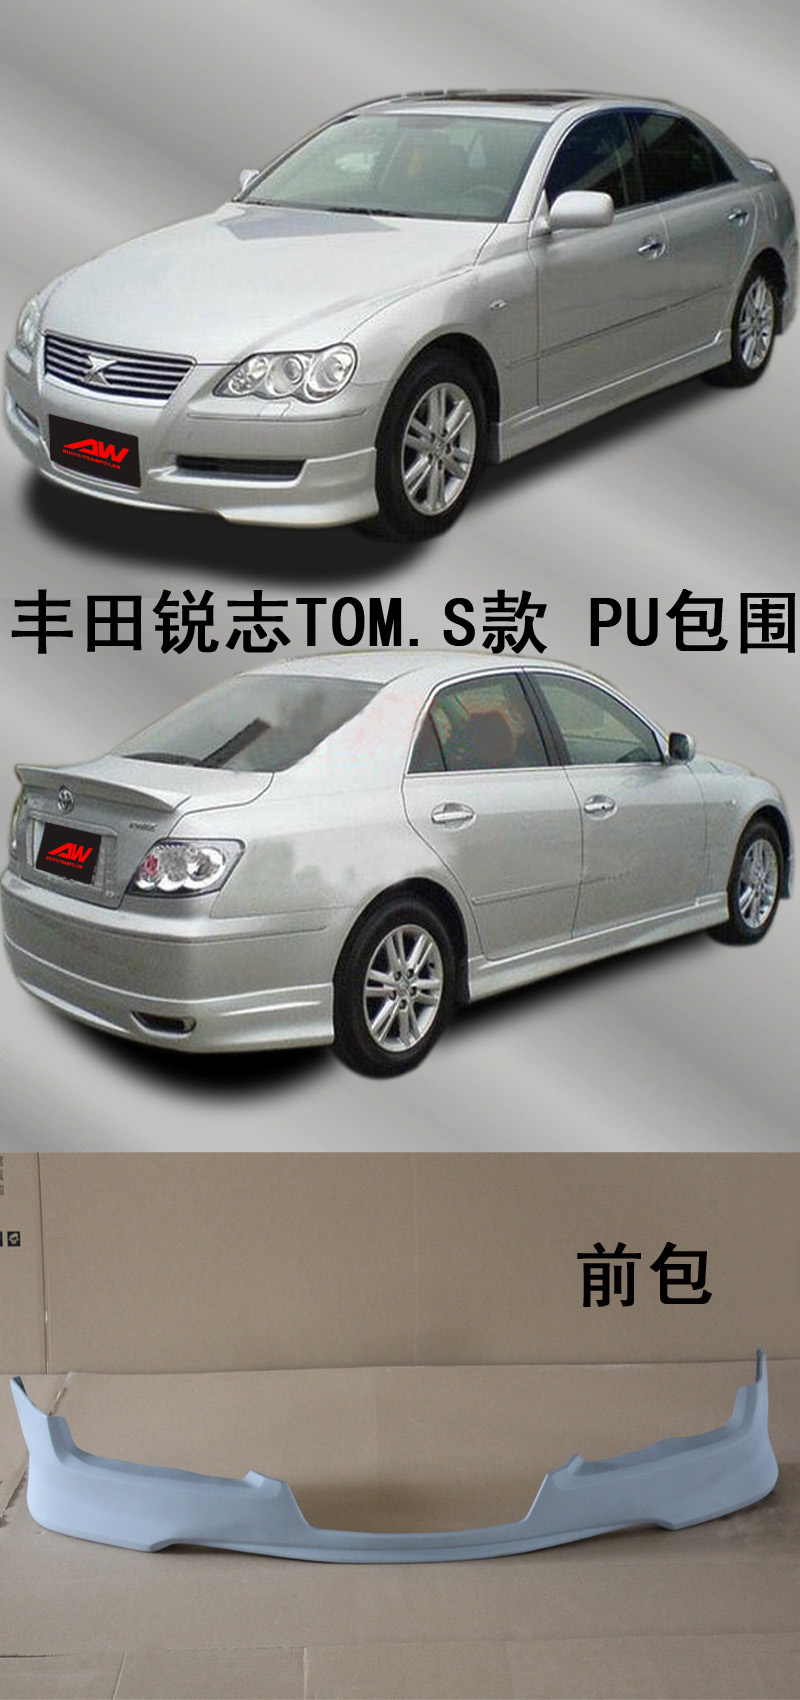 Toyota reiz TOM'S body kit